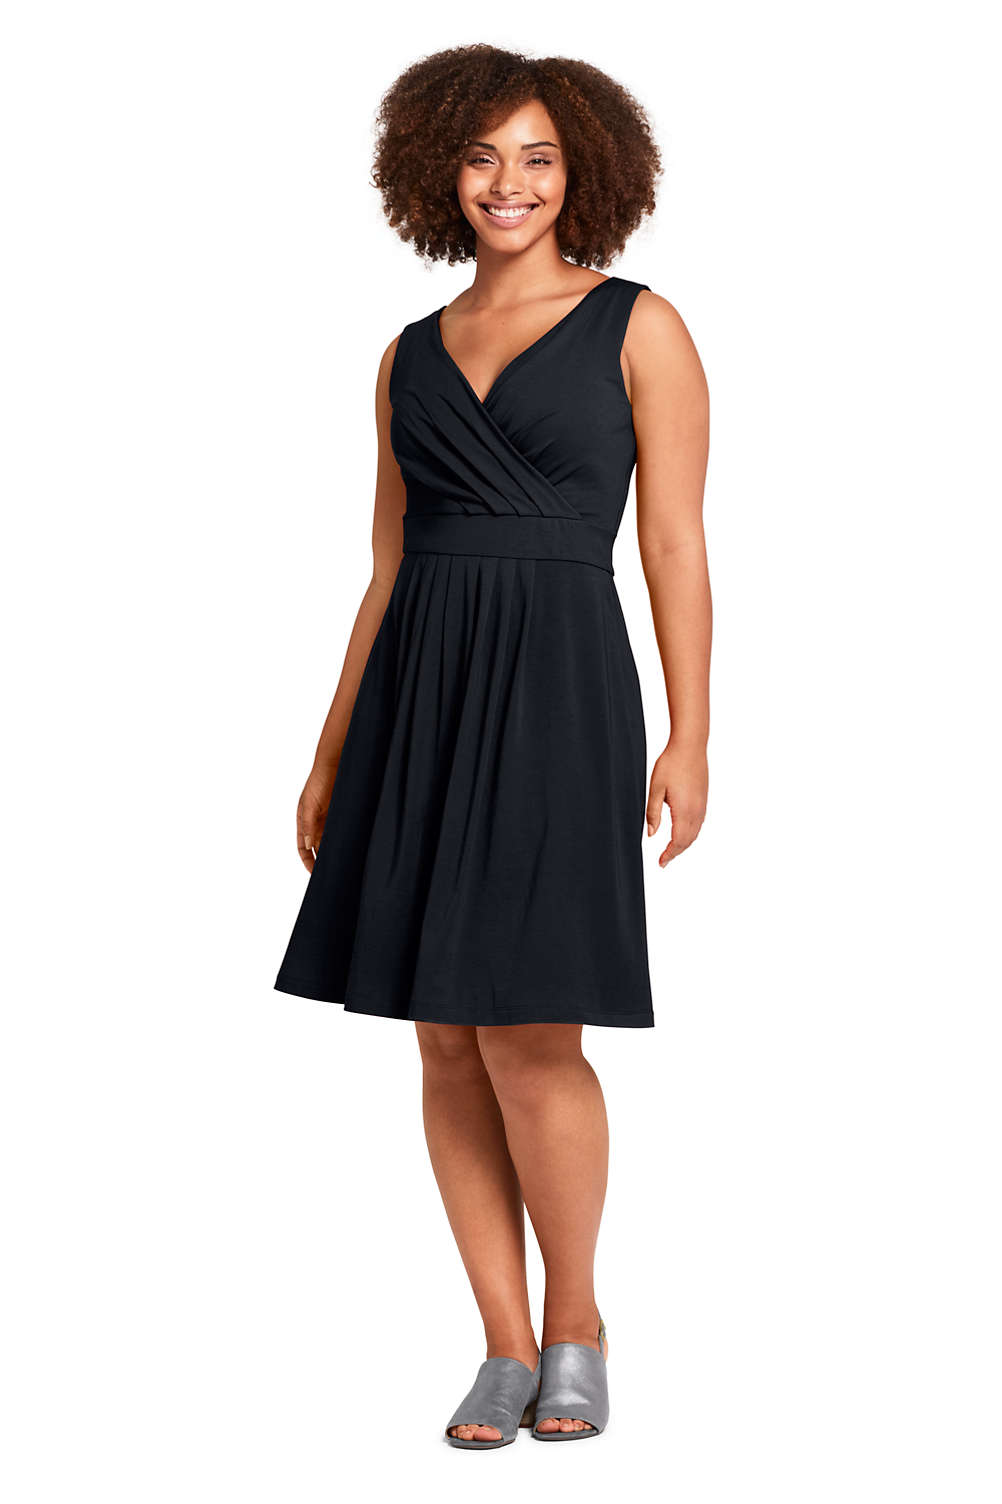 Women\'s Plus Size Banded Waist Fit and Flare Dress Knee Length